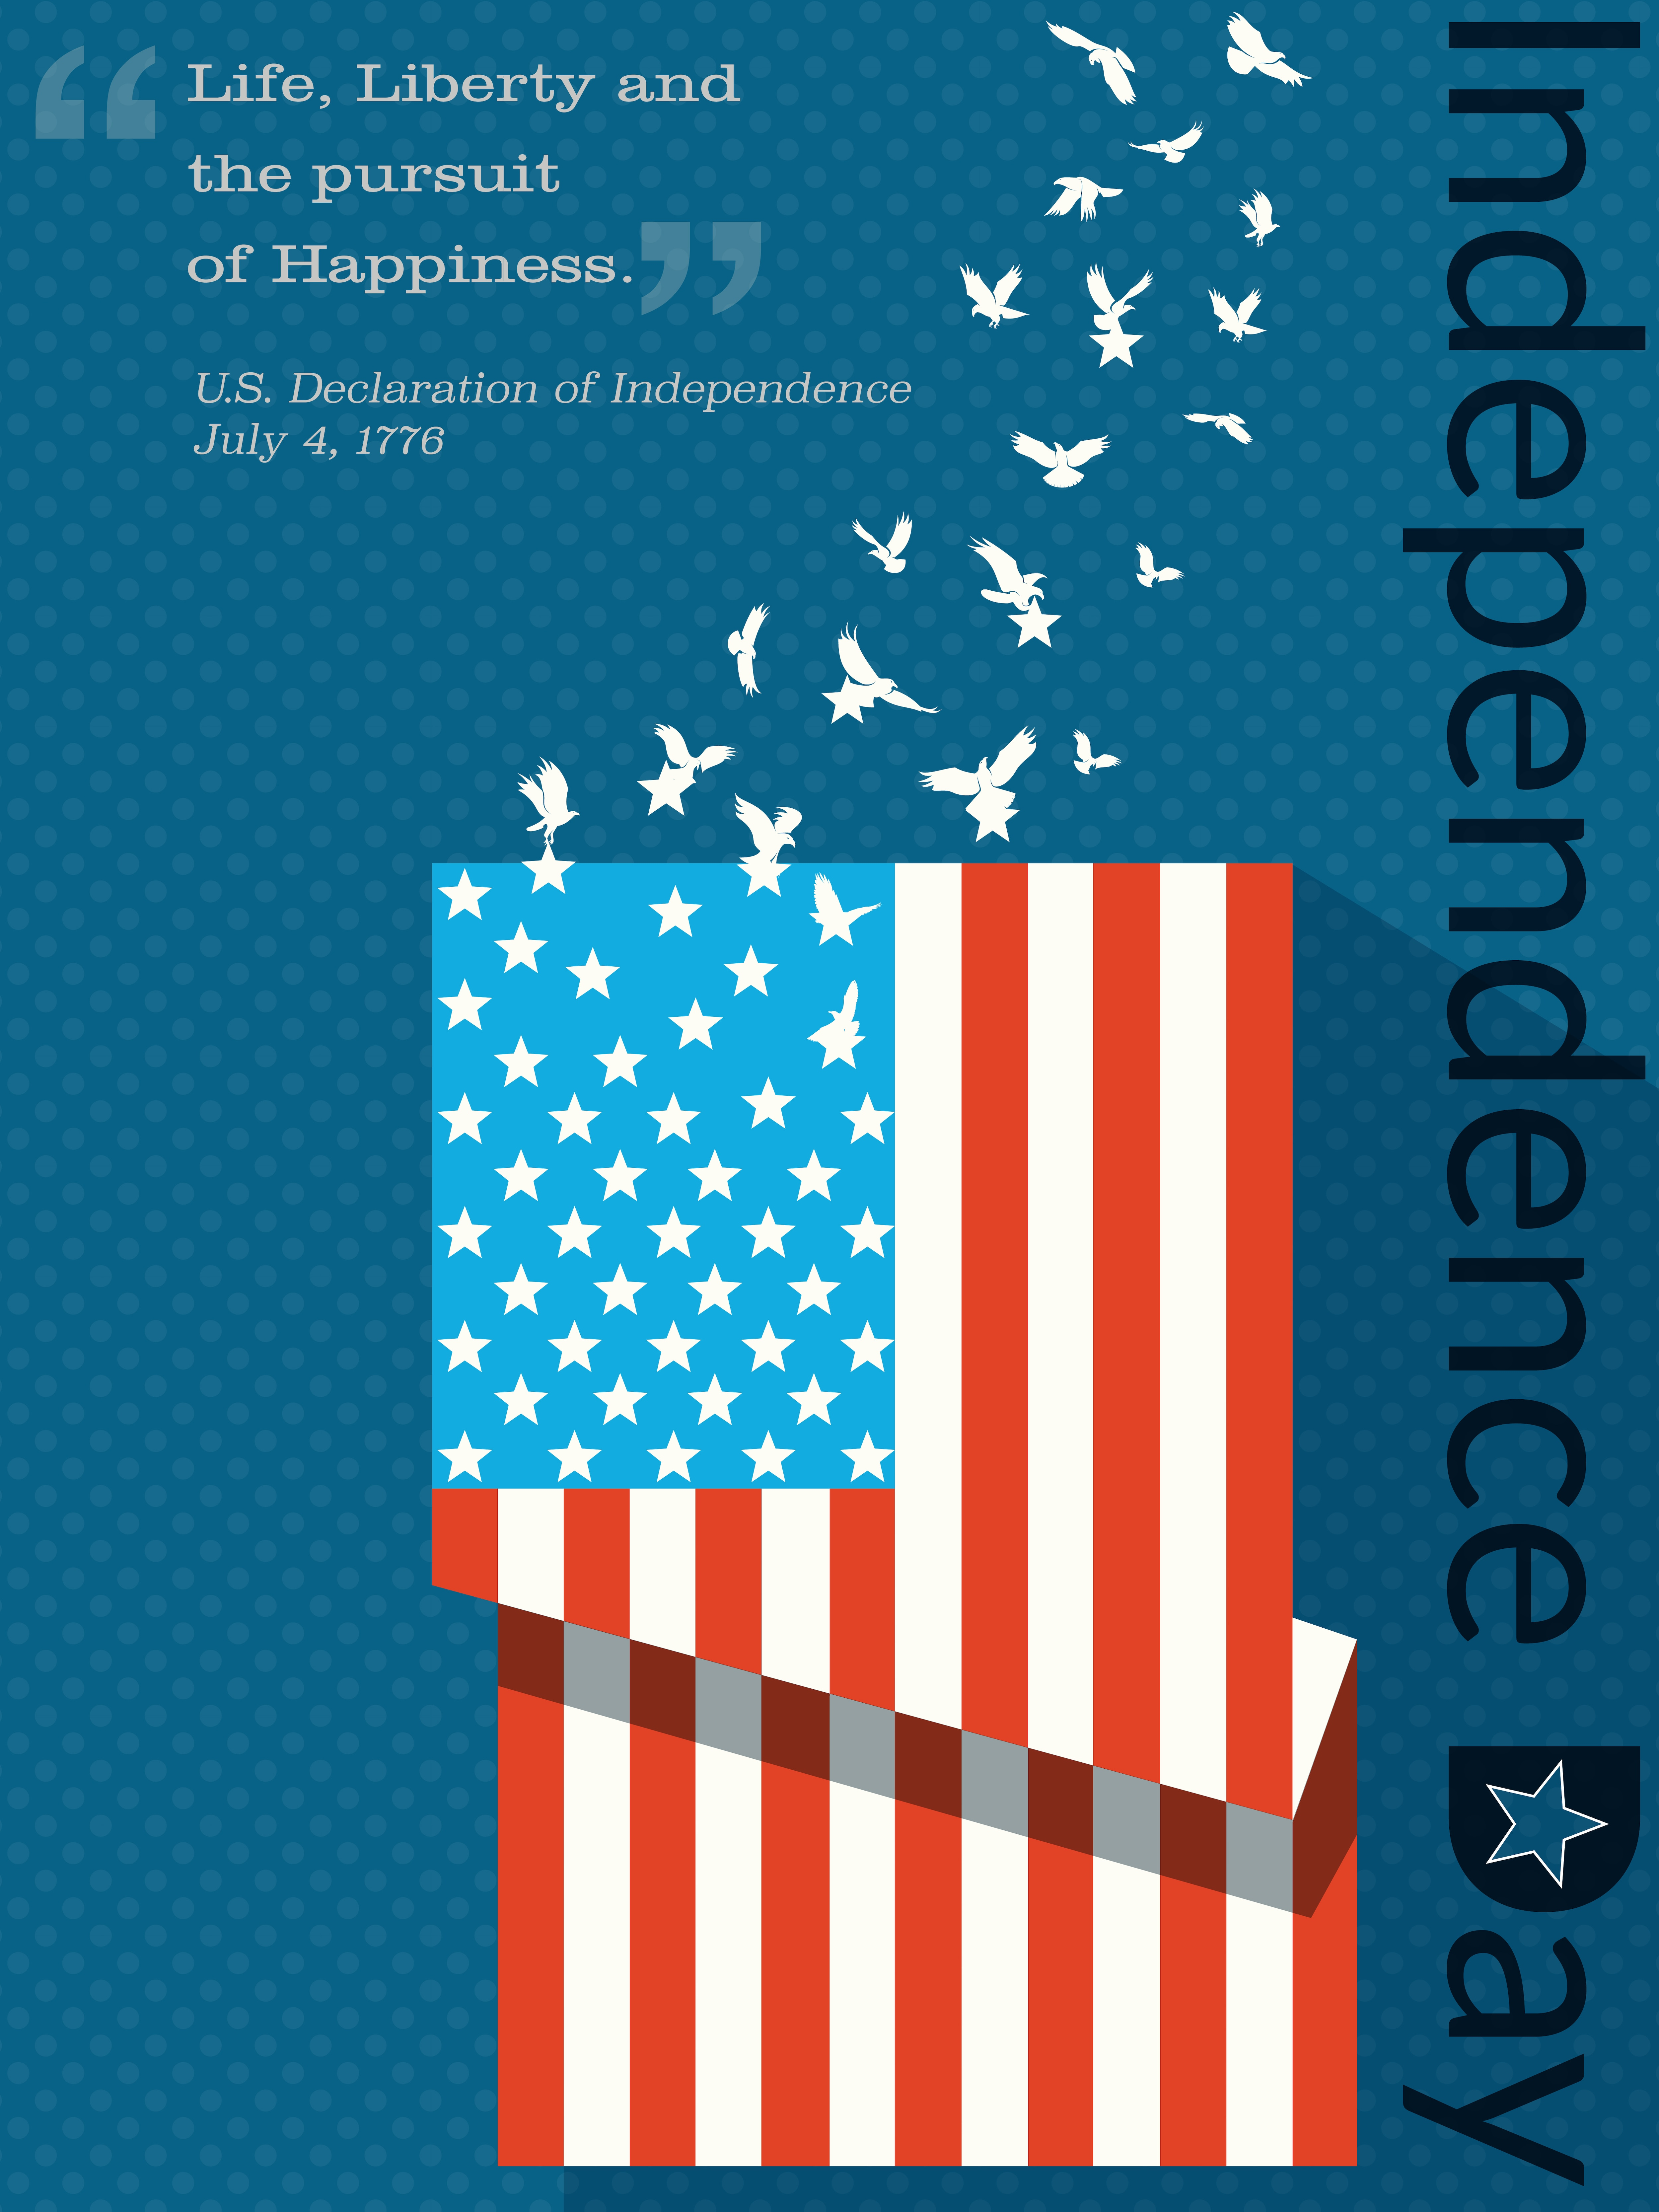 """Illustration of American flag vertical with block quote reading, """"Life, Liberty and the pursuit of Happiness"""" and caption """"Independence Day"""" (State Dept./S. Gemeny Wilkinson)"""